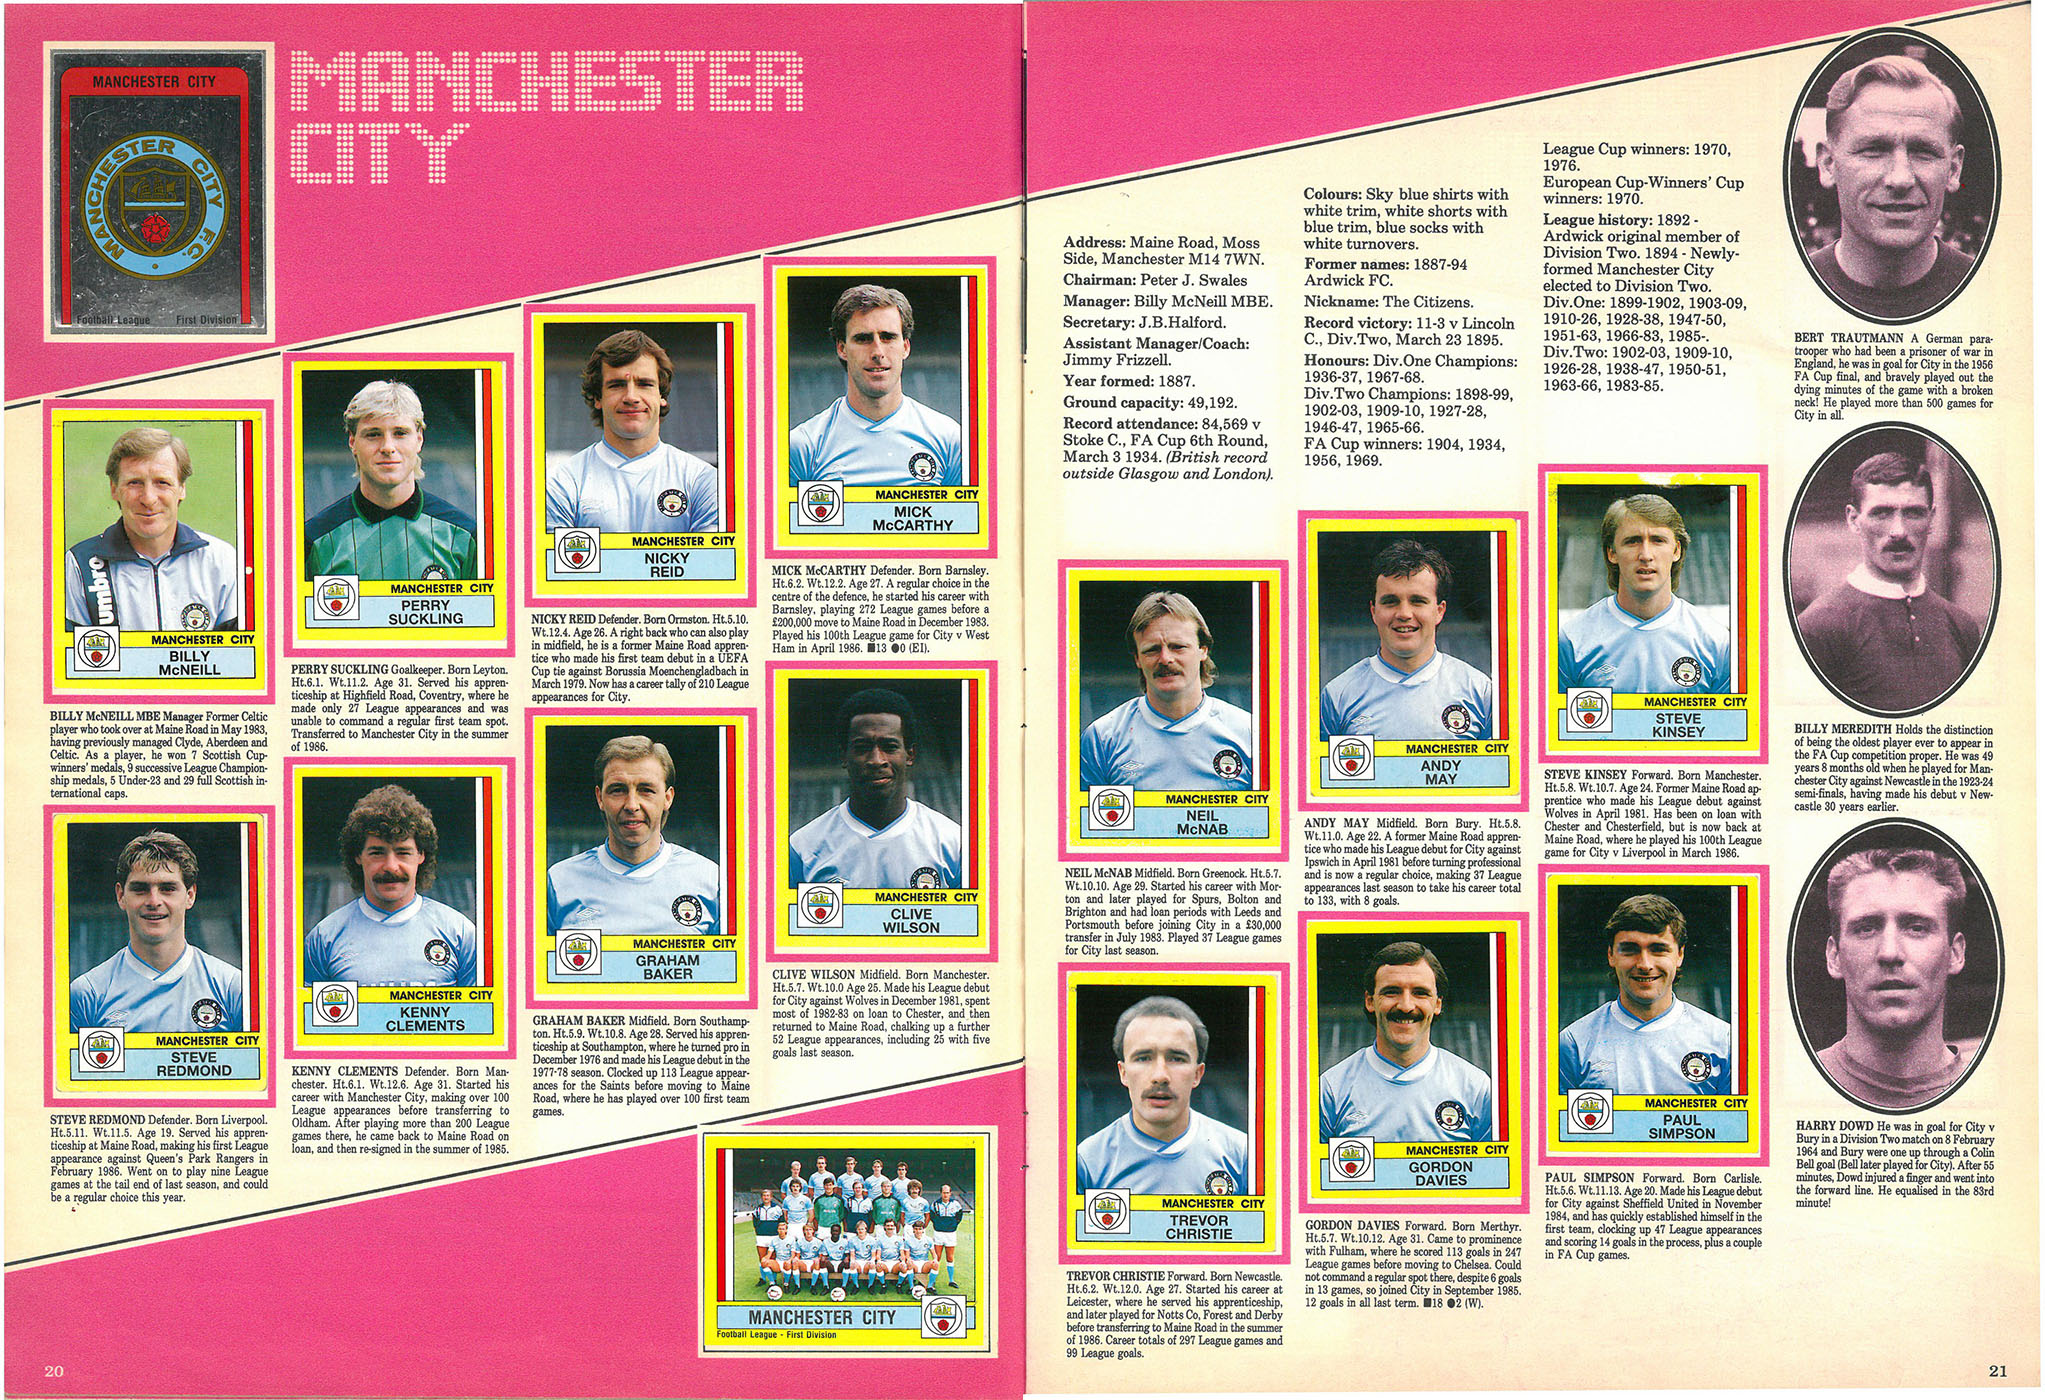 Manchester City 1987